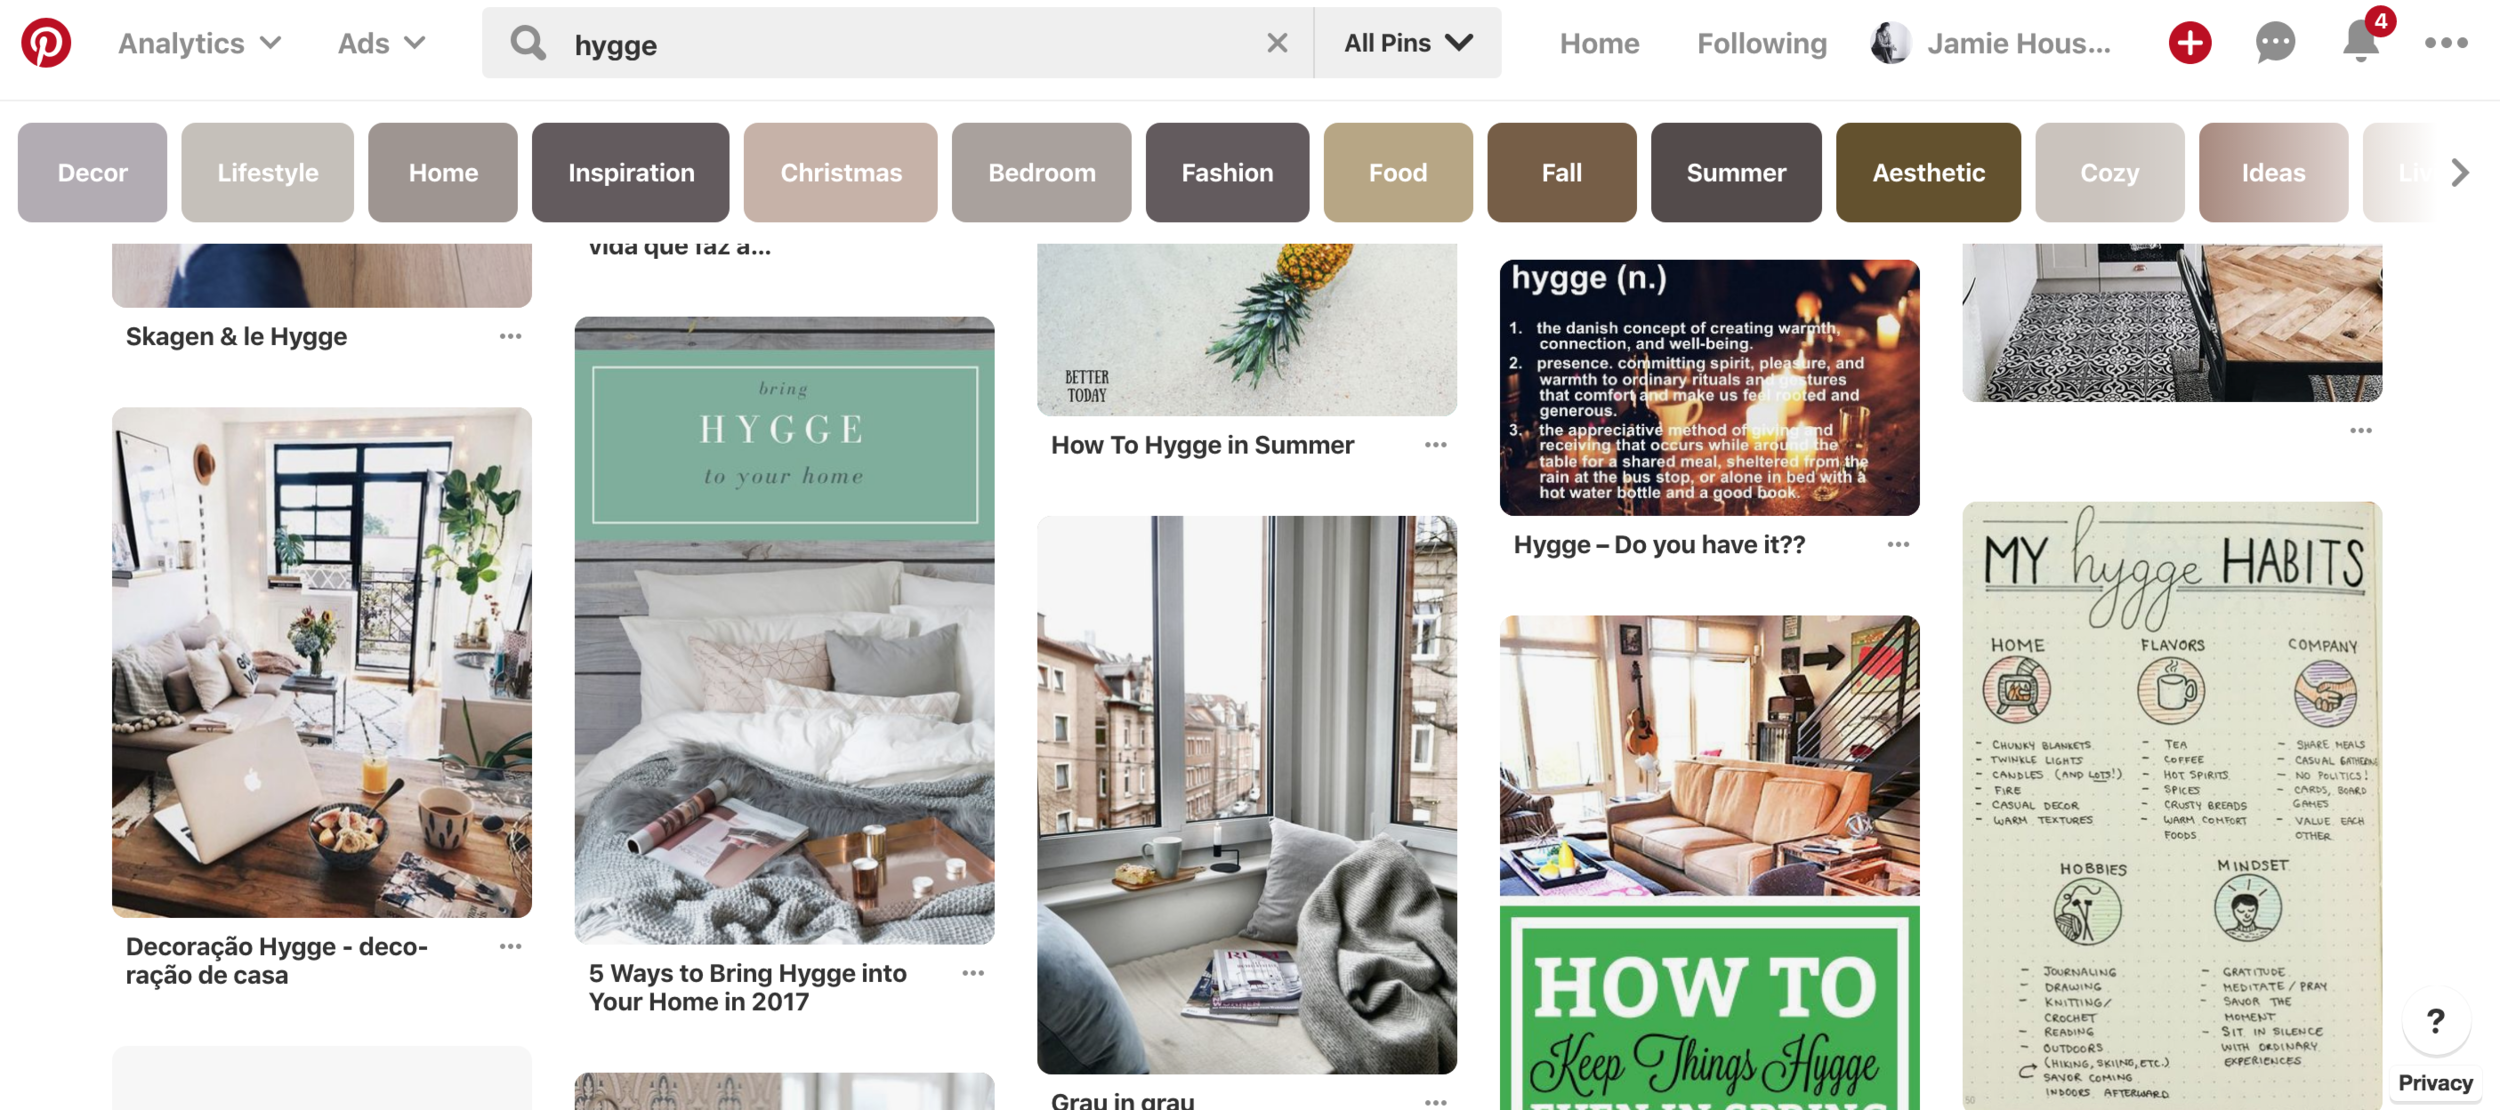 Pinterest search of Hygge. In Pursuit of Hygge | Jamie House Design